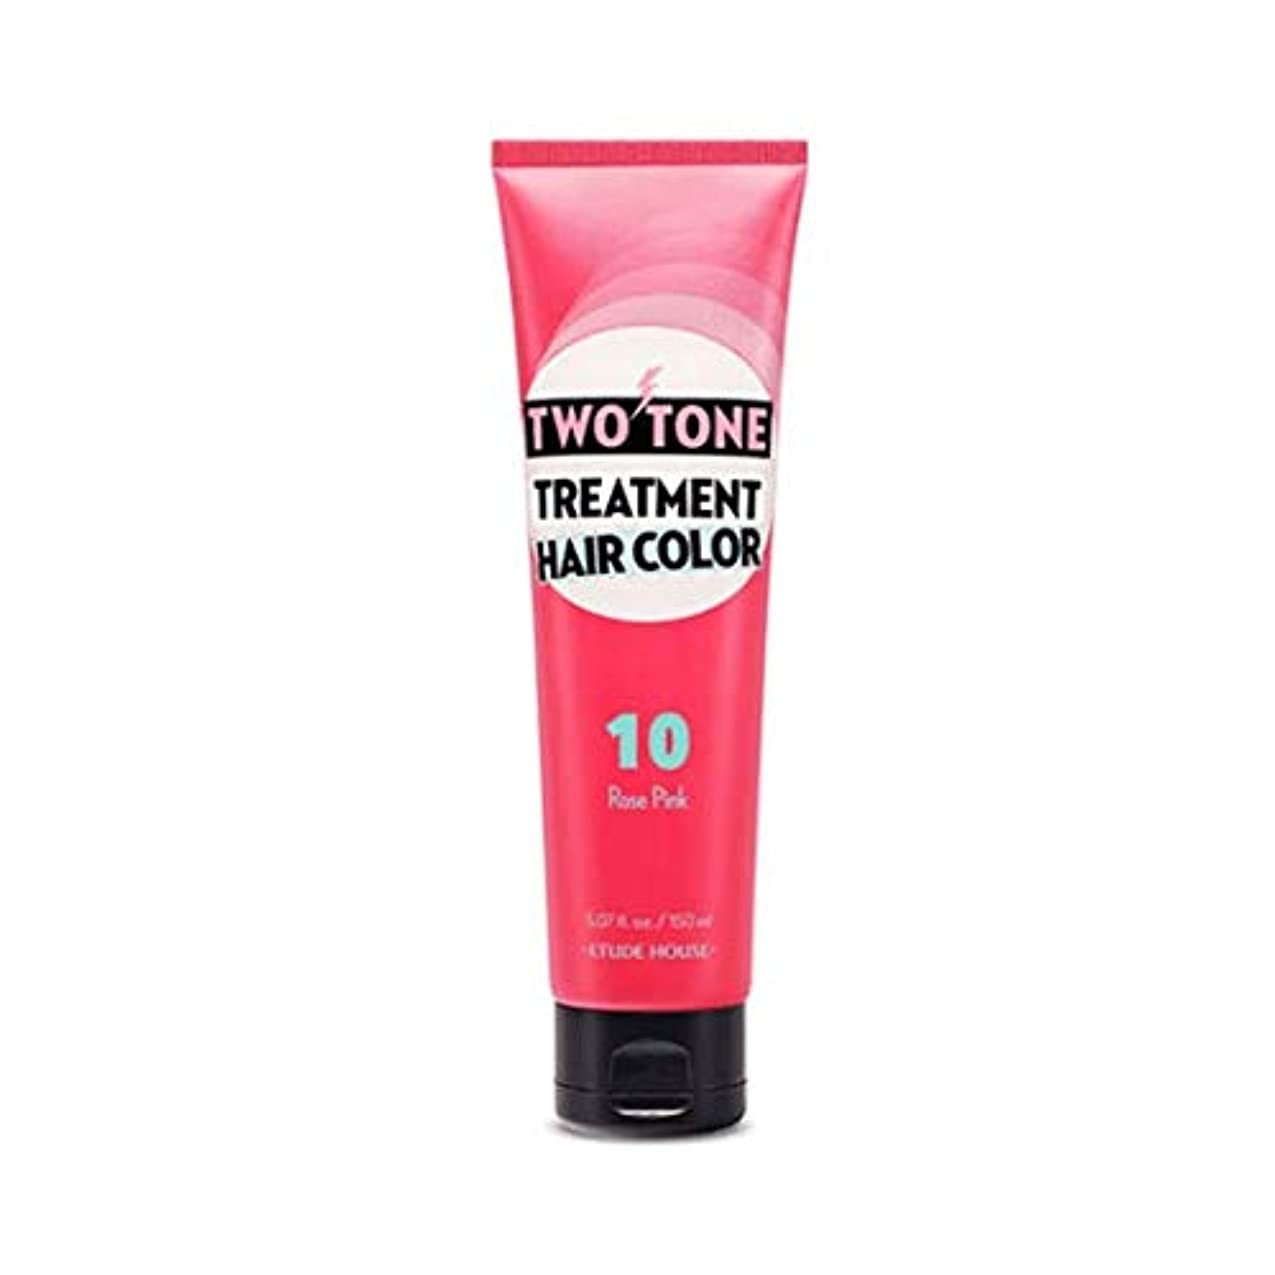 ETUDE HOUSE Two Tone Treatment Hair Color *10 Rose Pink/エチュードハウス ツートントリートメントヘアカラー150ml [並行輸入品]